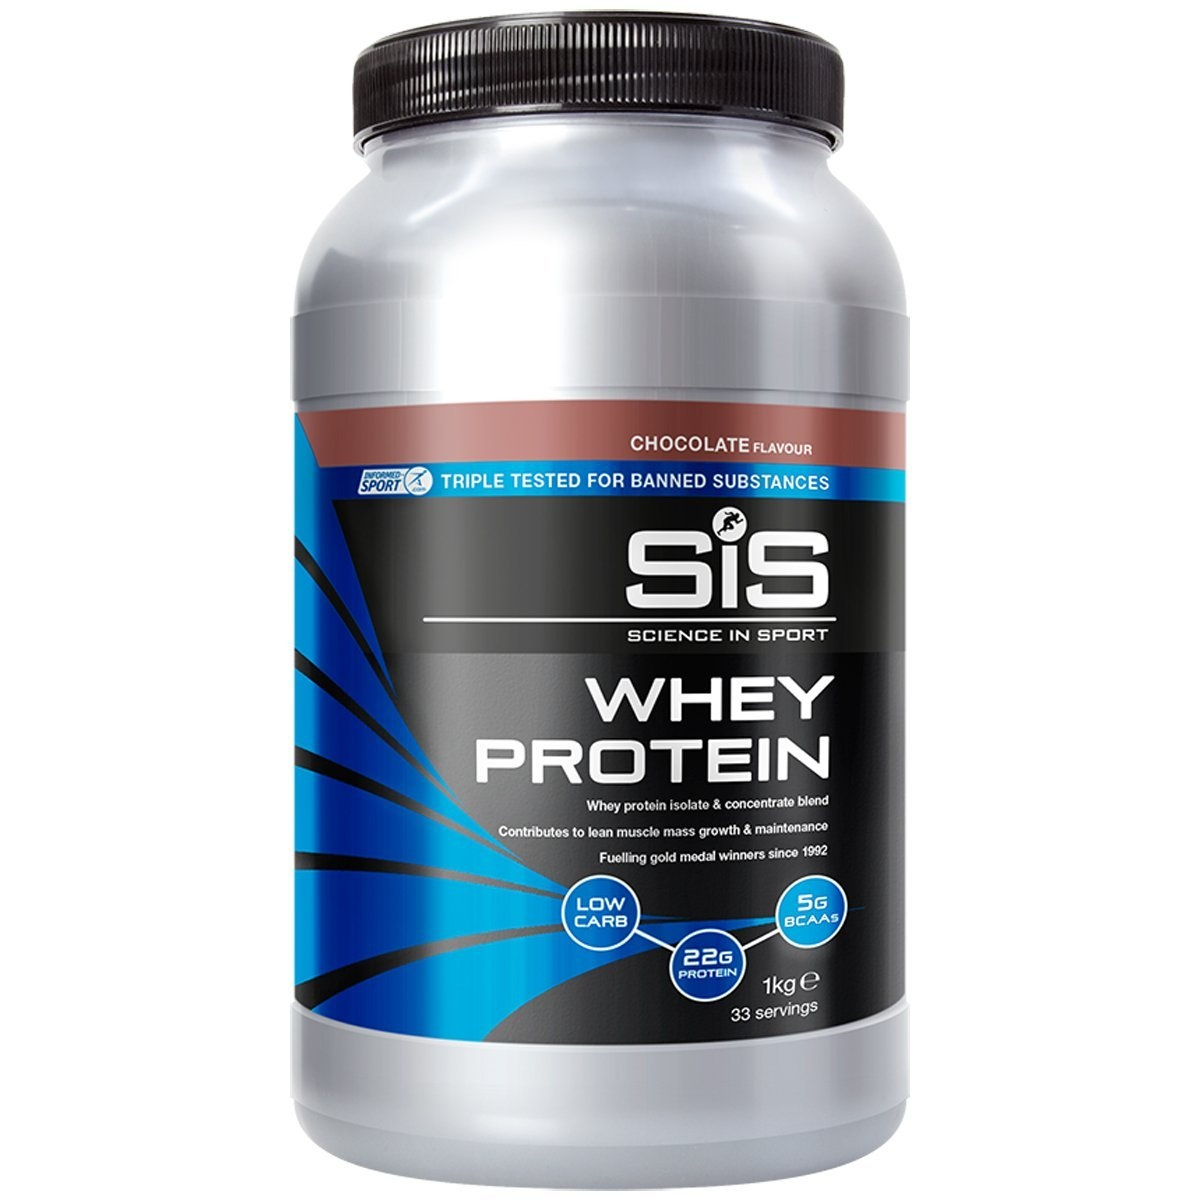 SIS Whey Protein Chocolate - 1kg